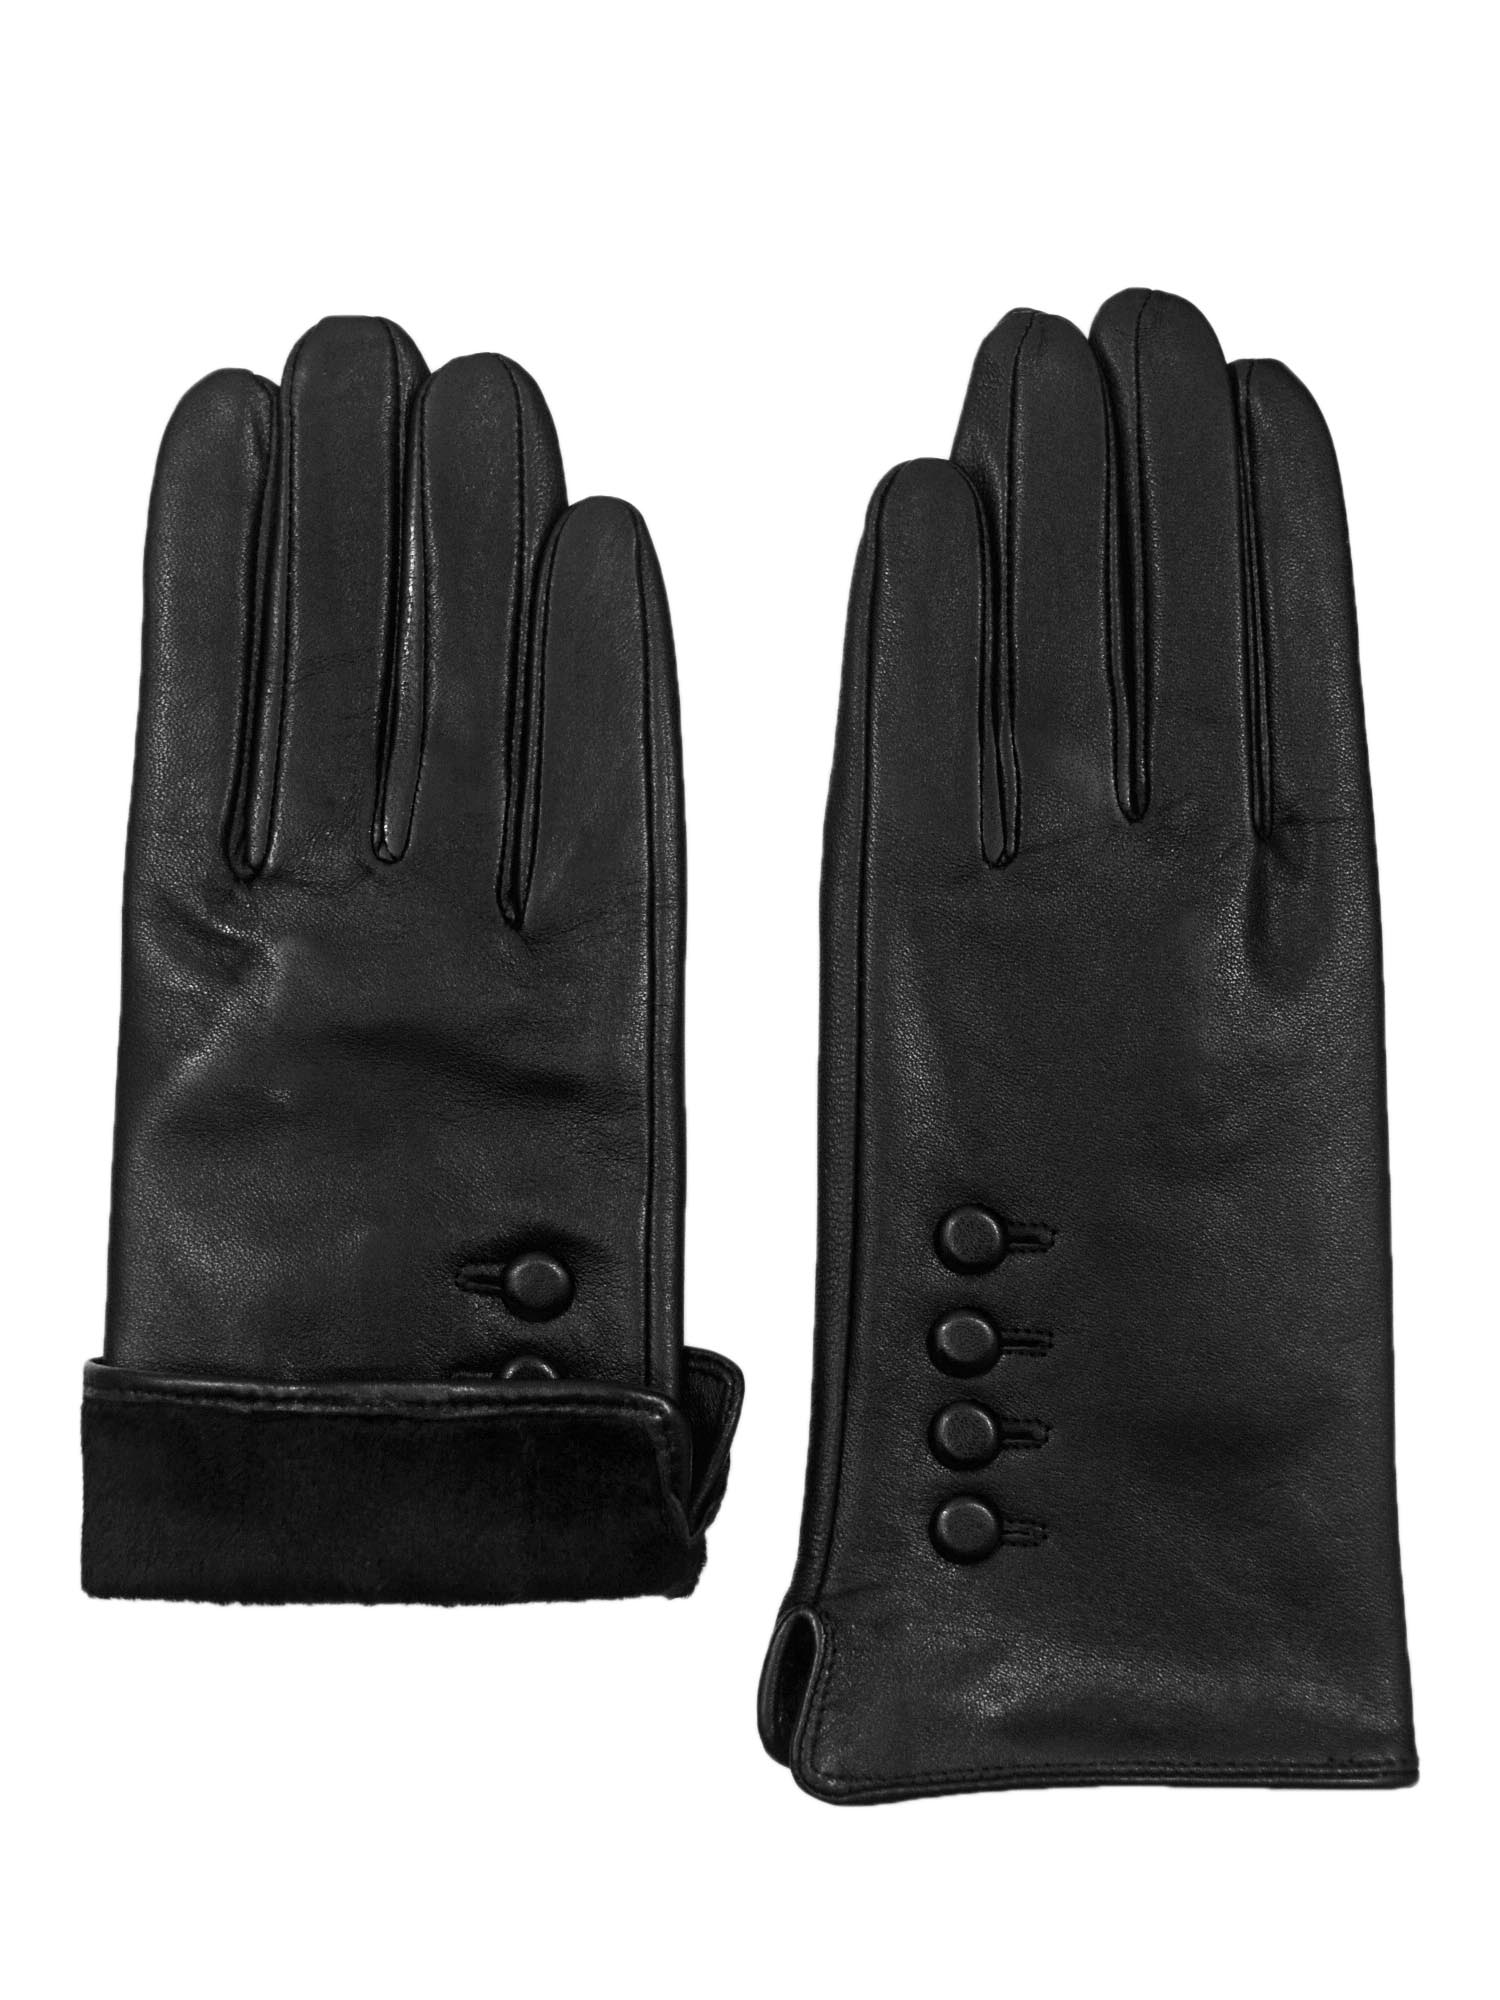 thumbnail 6 - Giromy-Samoni-Womens-Warm-Winter-Plush-Lined-Leather-Driving-Gloves-Black